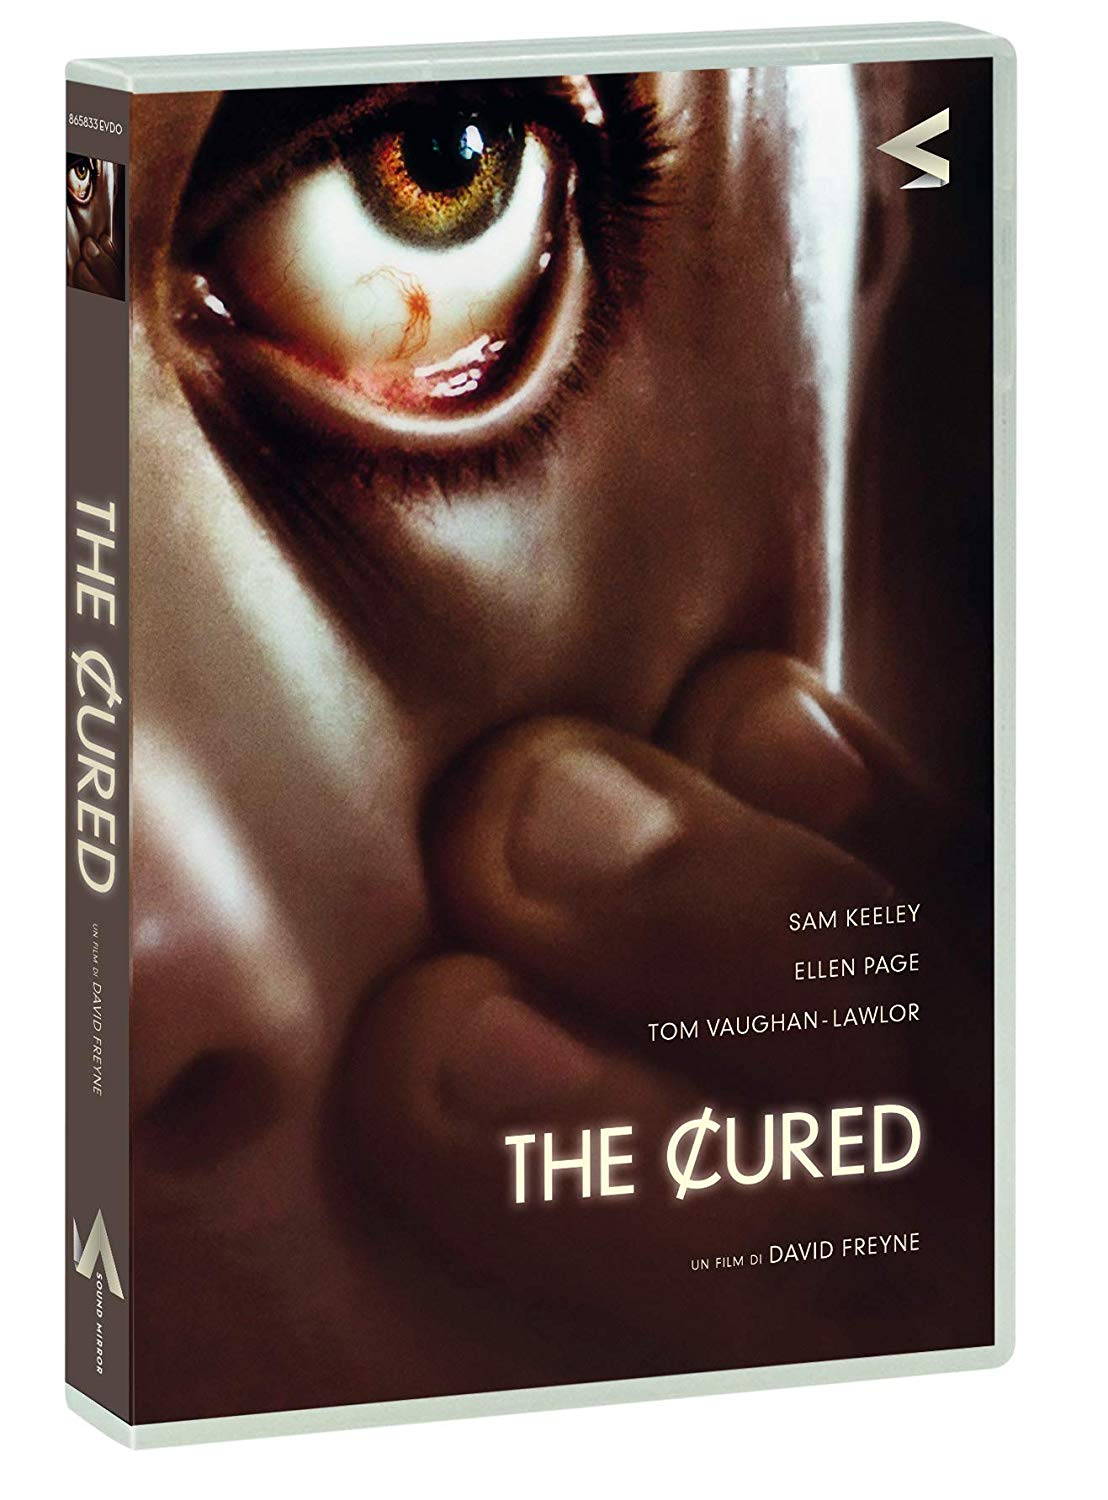 THE CURED (DVD)